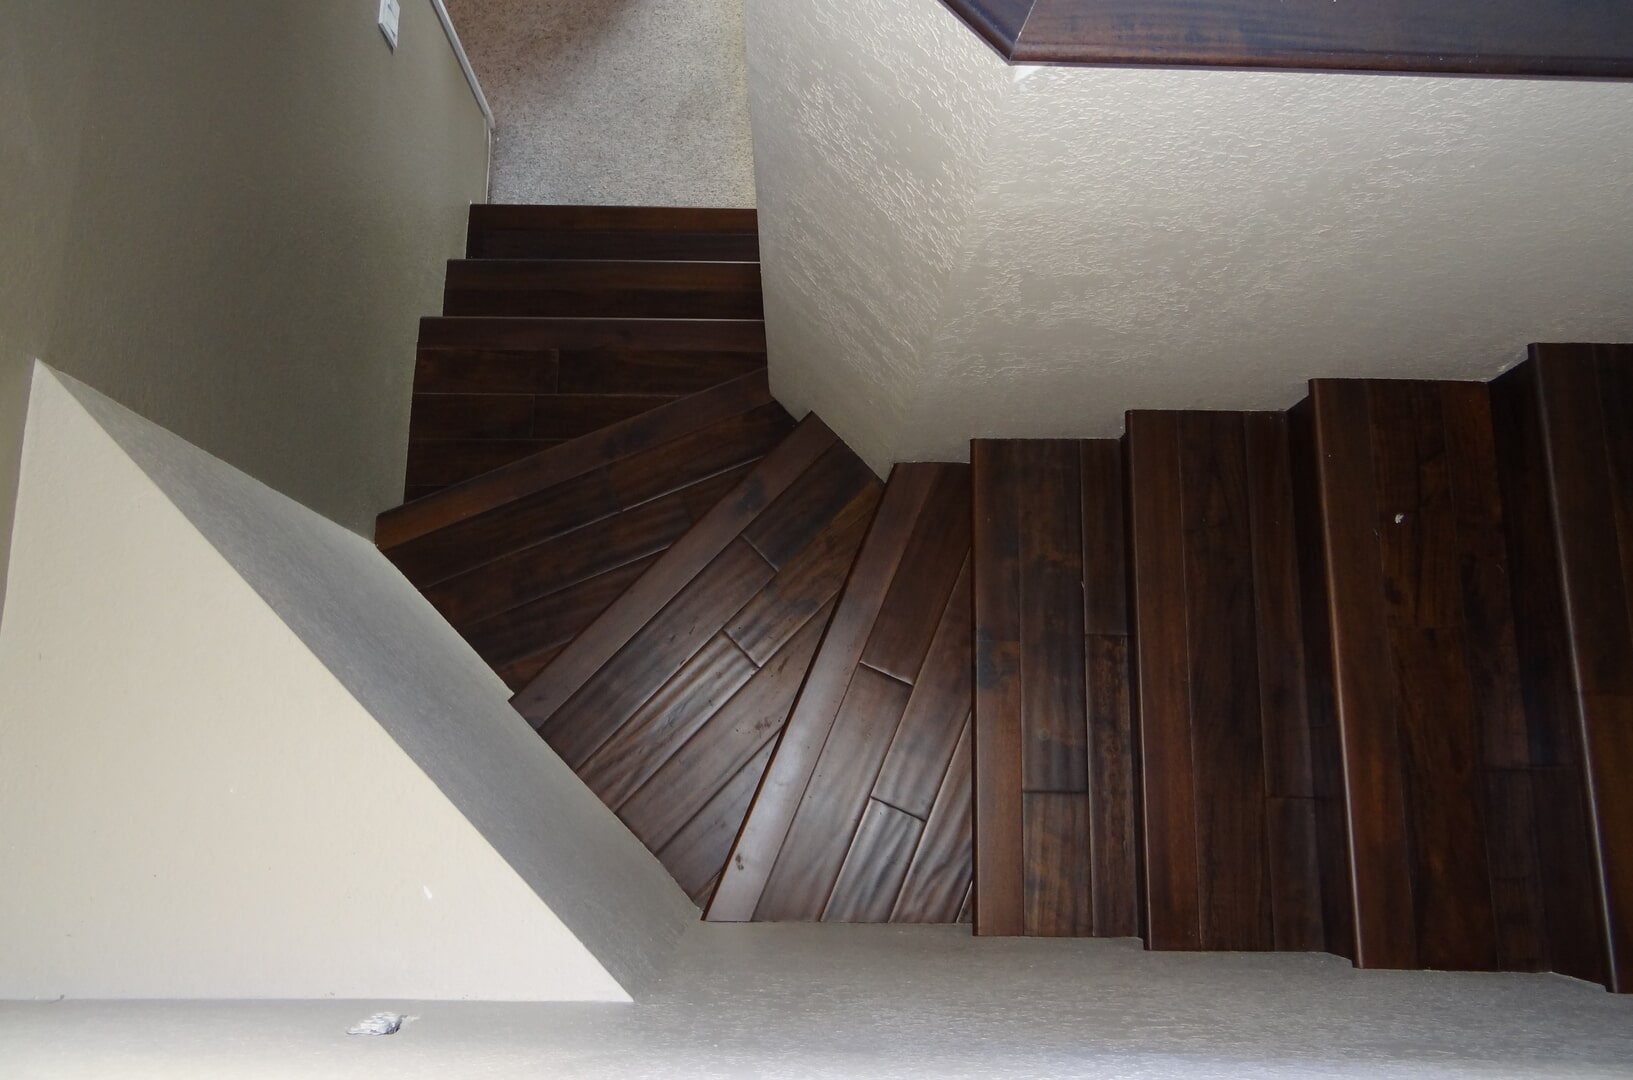 Bergen Hardwood Flooring Our Work - Stairs7